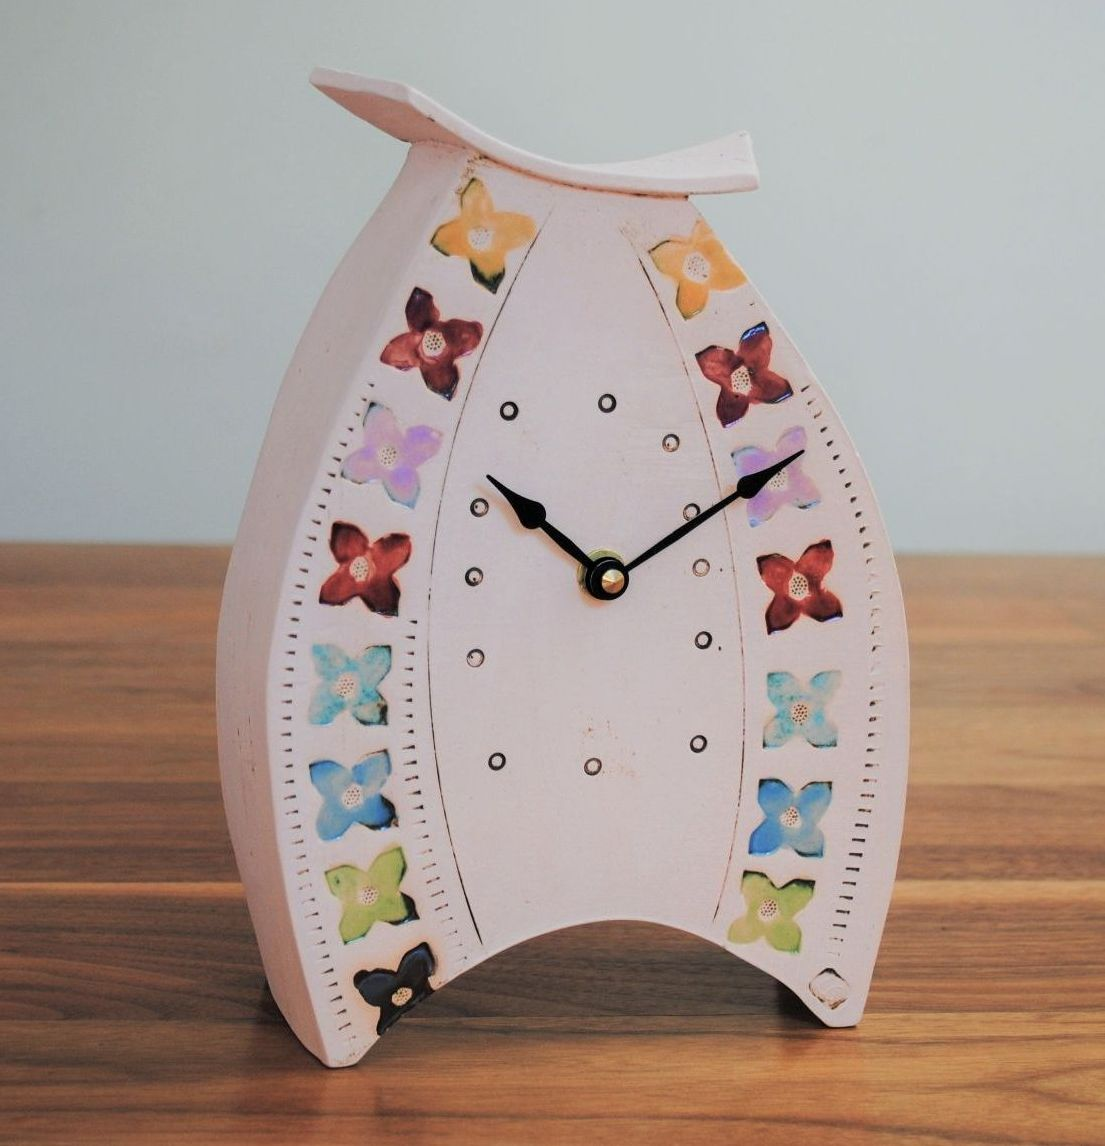 Large ceramic mantel clock in white clay with multicolour prints.